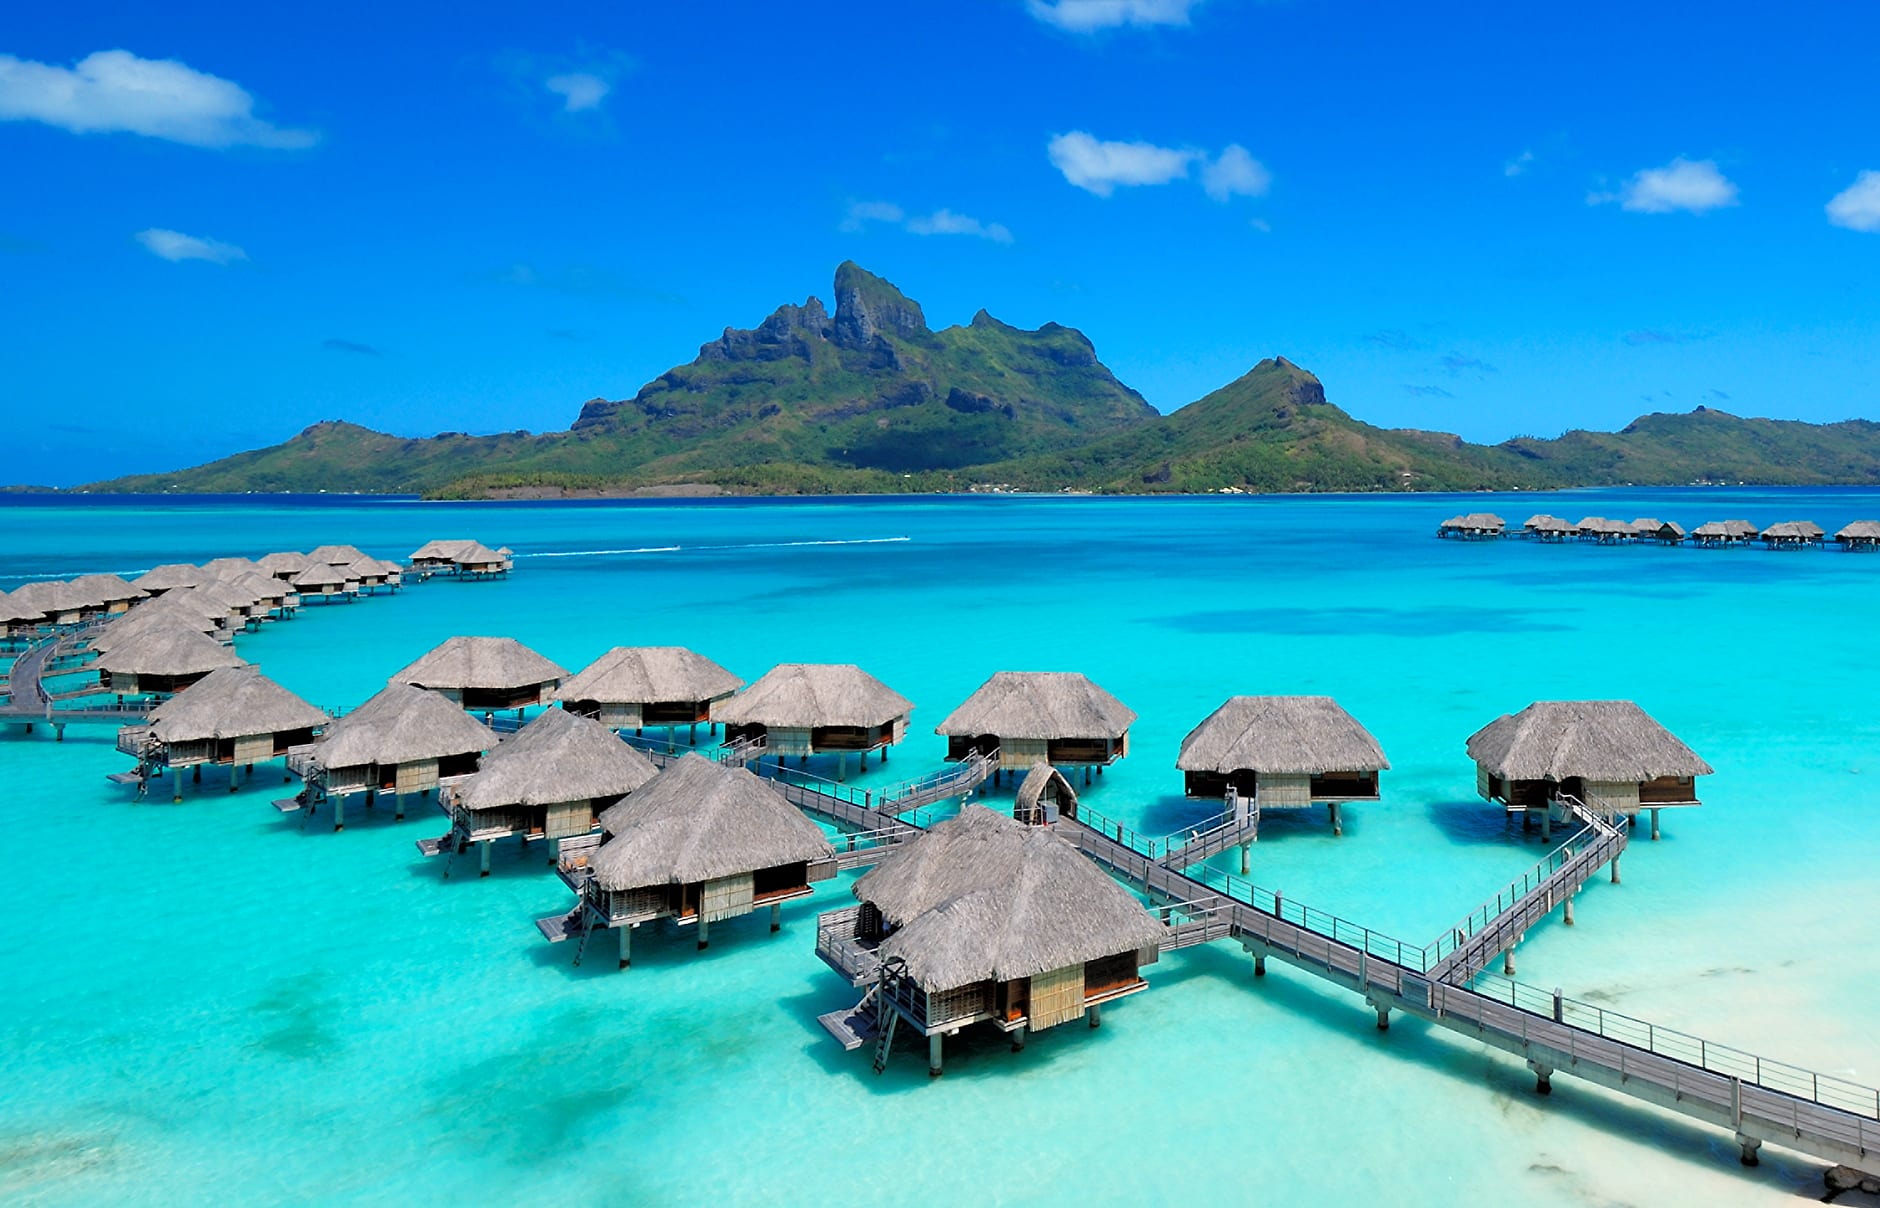 Four seasons resort bora bora luxury hotels travelplusstyle for Top 10 couples resorts